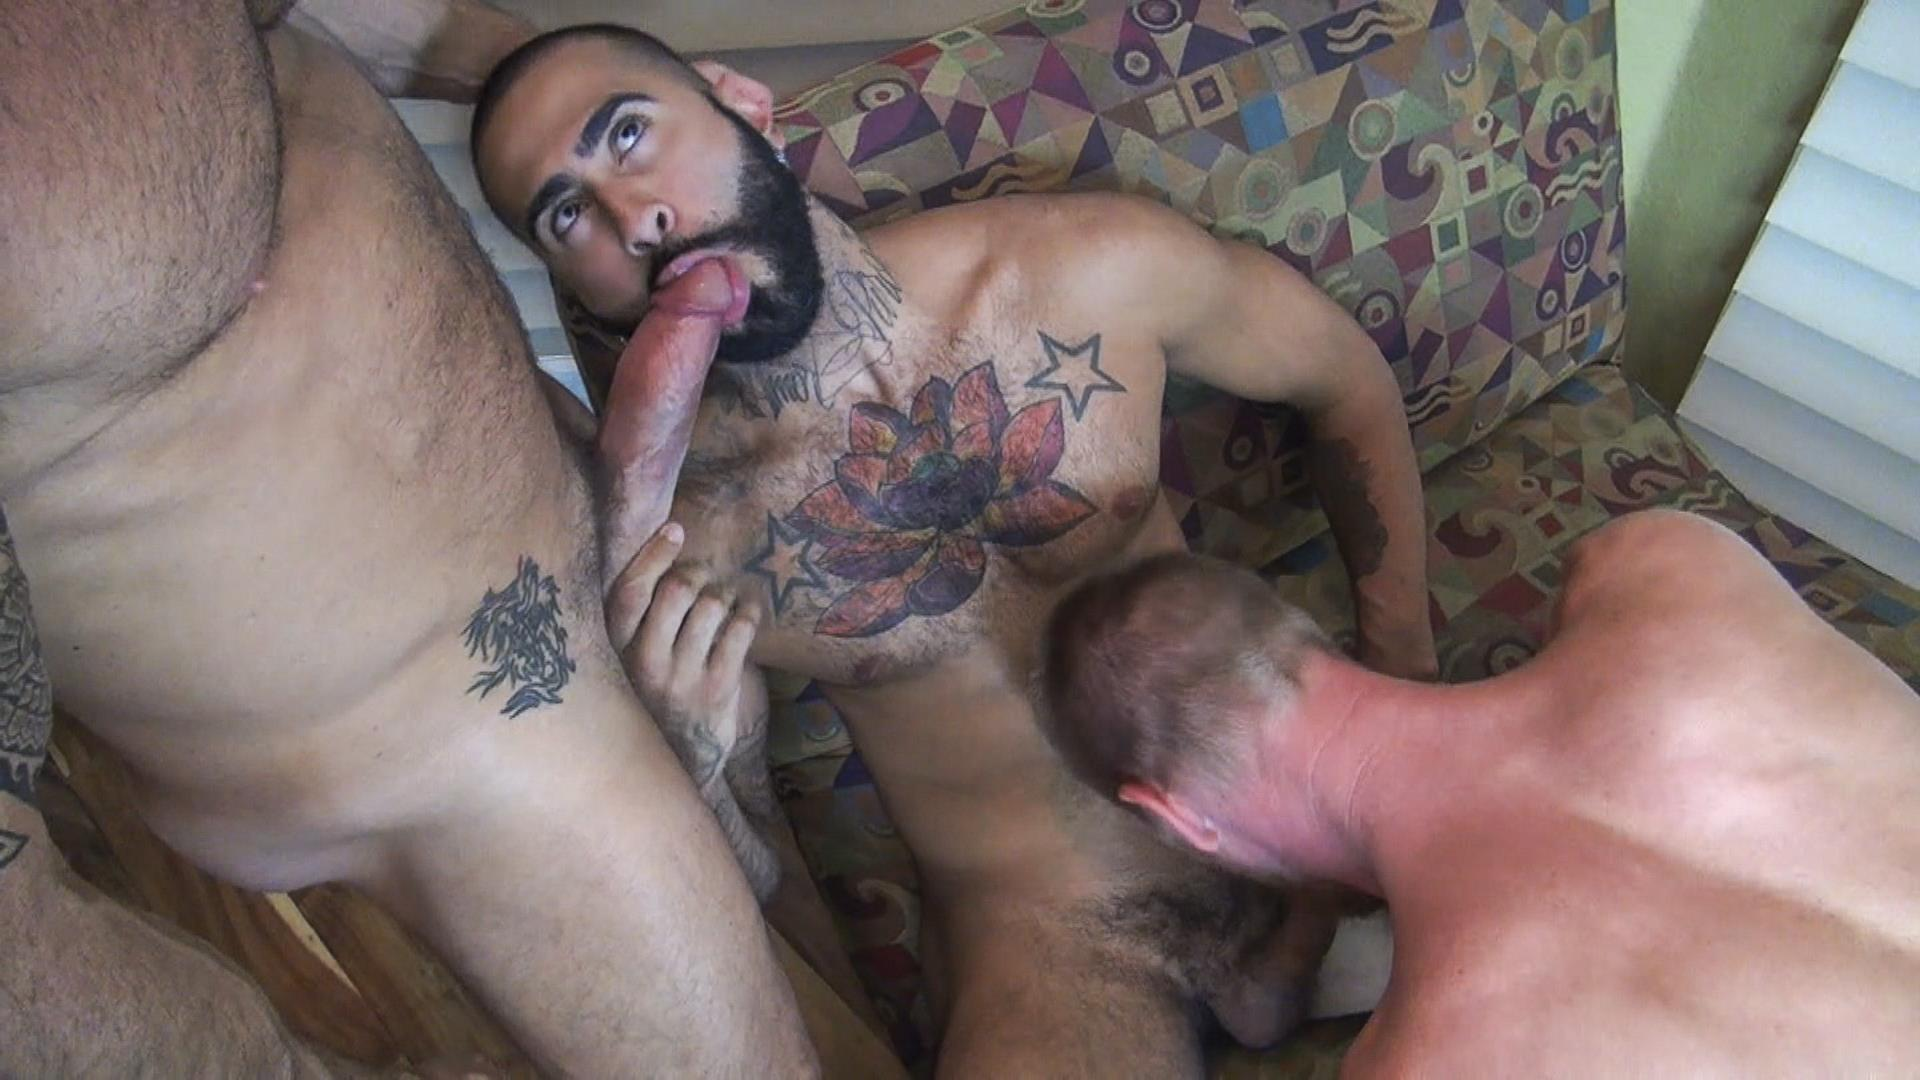 Very hot hairy sex video picturs #3